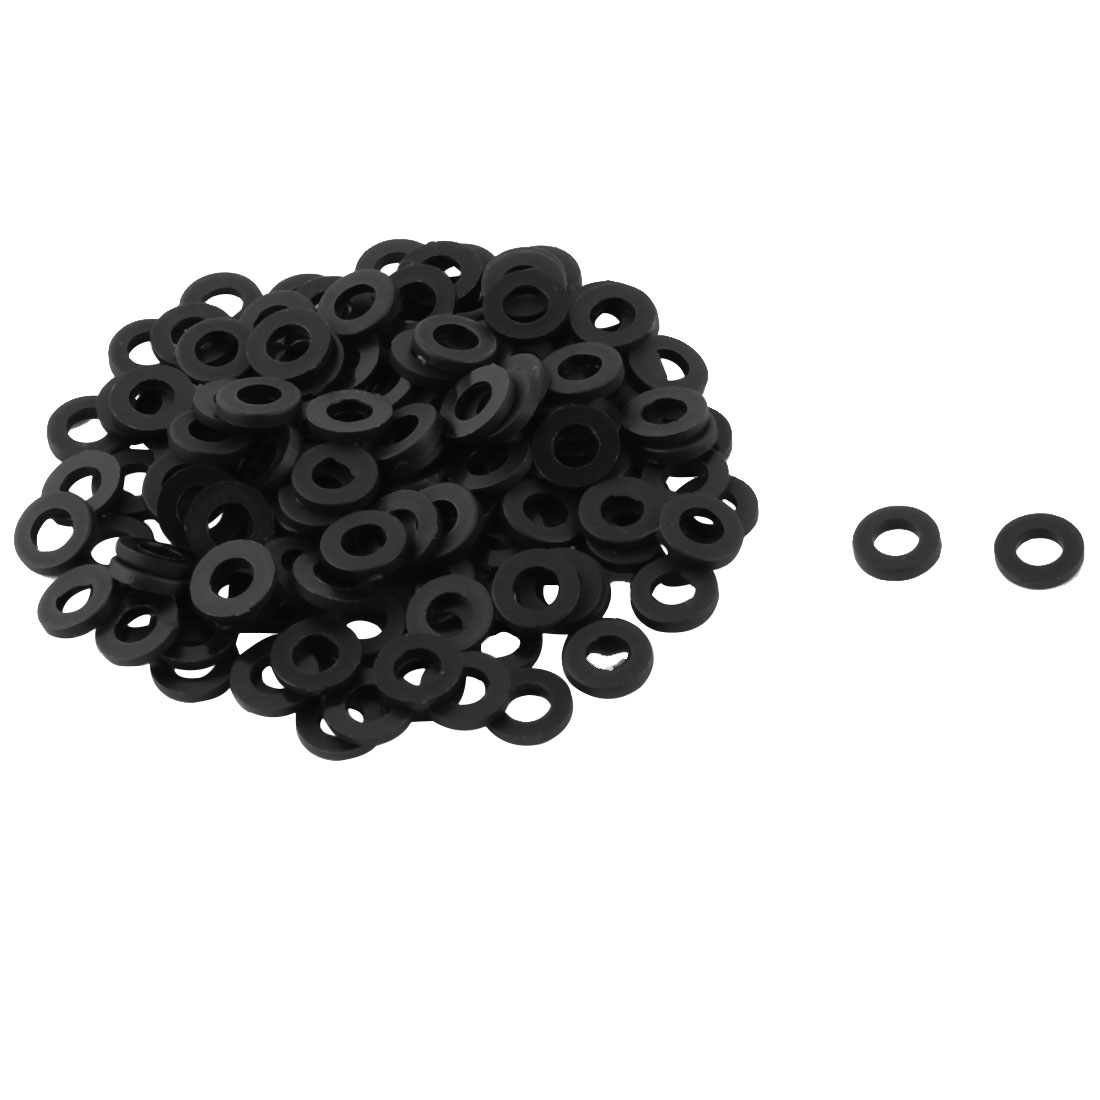 Plastic Replacement Insulating Flat Washer Gasket Black 6mm x 3mm x 1mm 100 Pcs - image 1 de 1